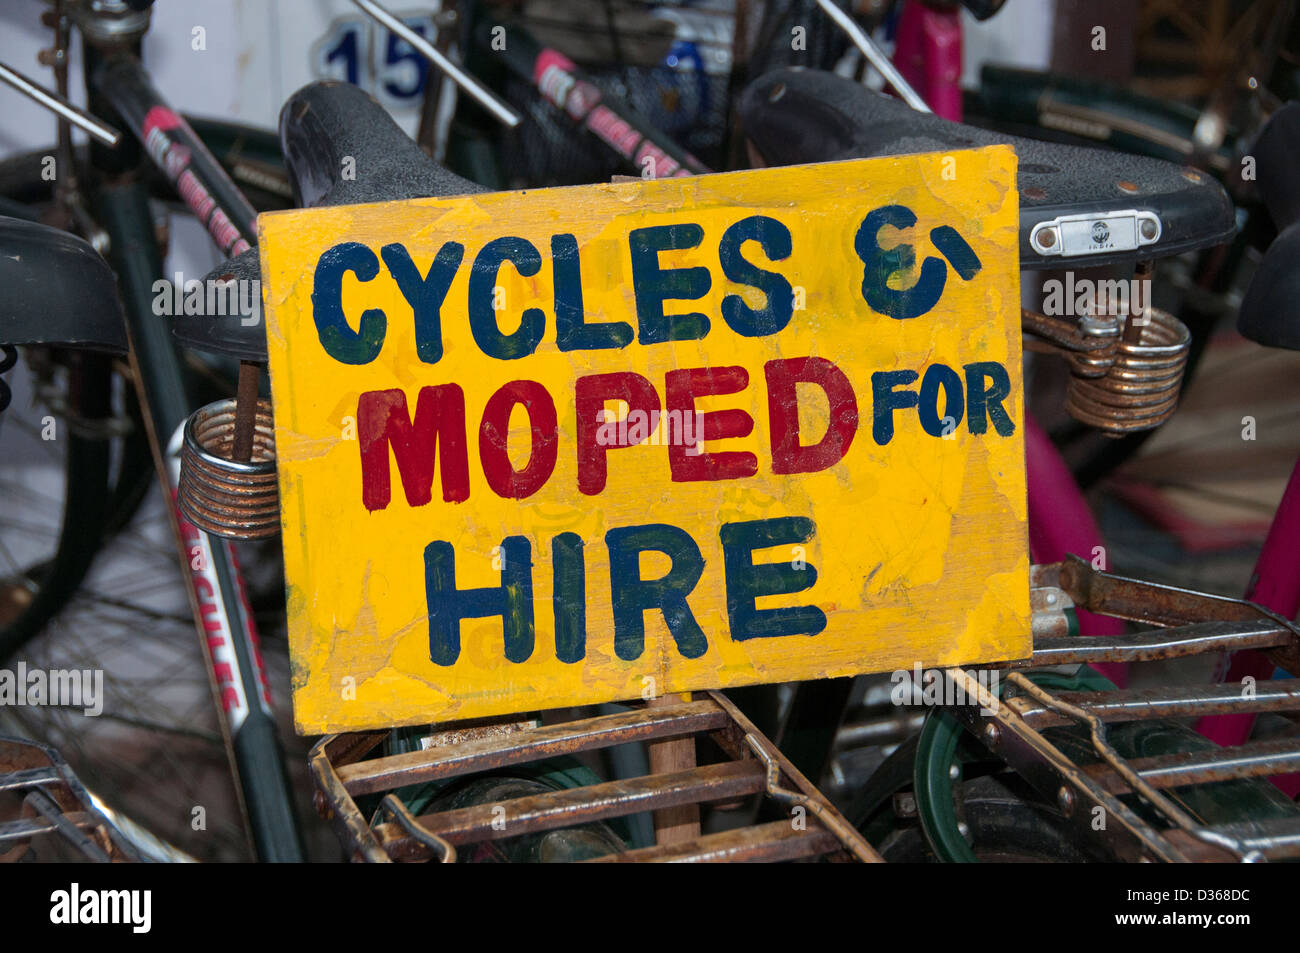 Cycles Moped for Hire Covelong  ( Kovalam or Cobelon ) India Tamil Nadu - Stock Image